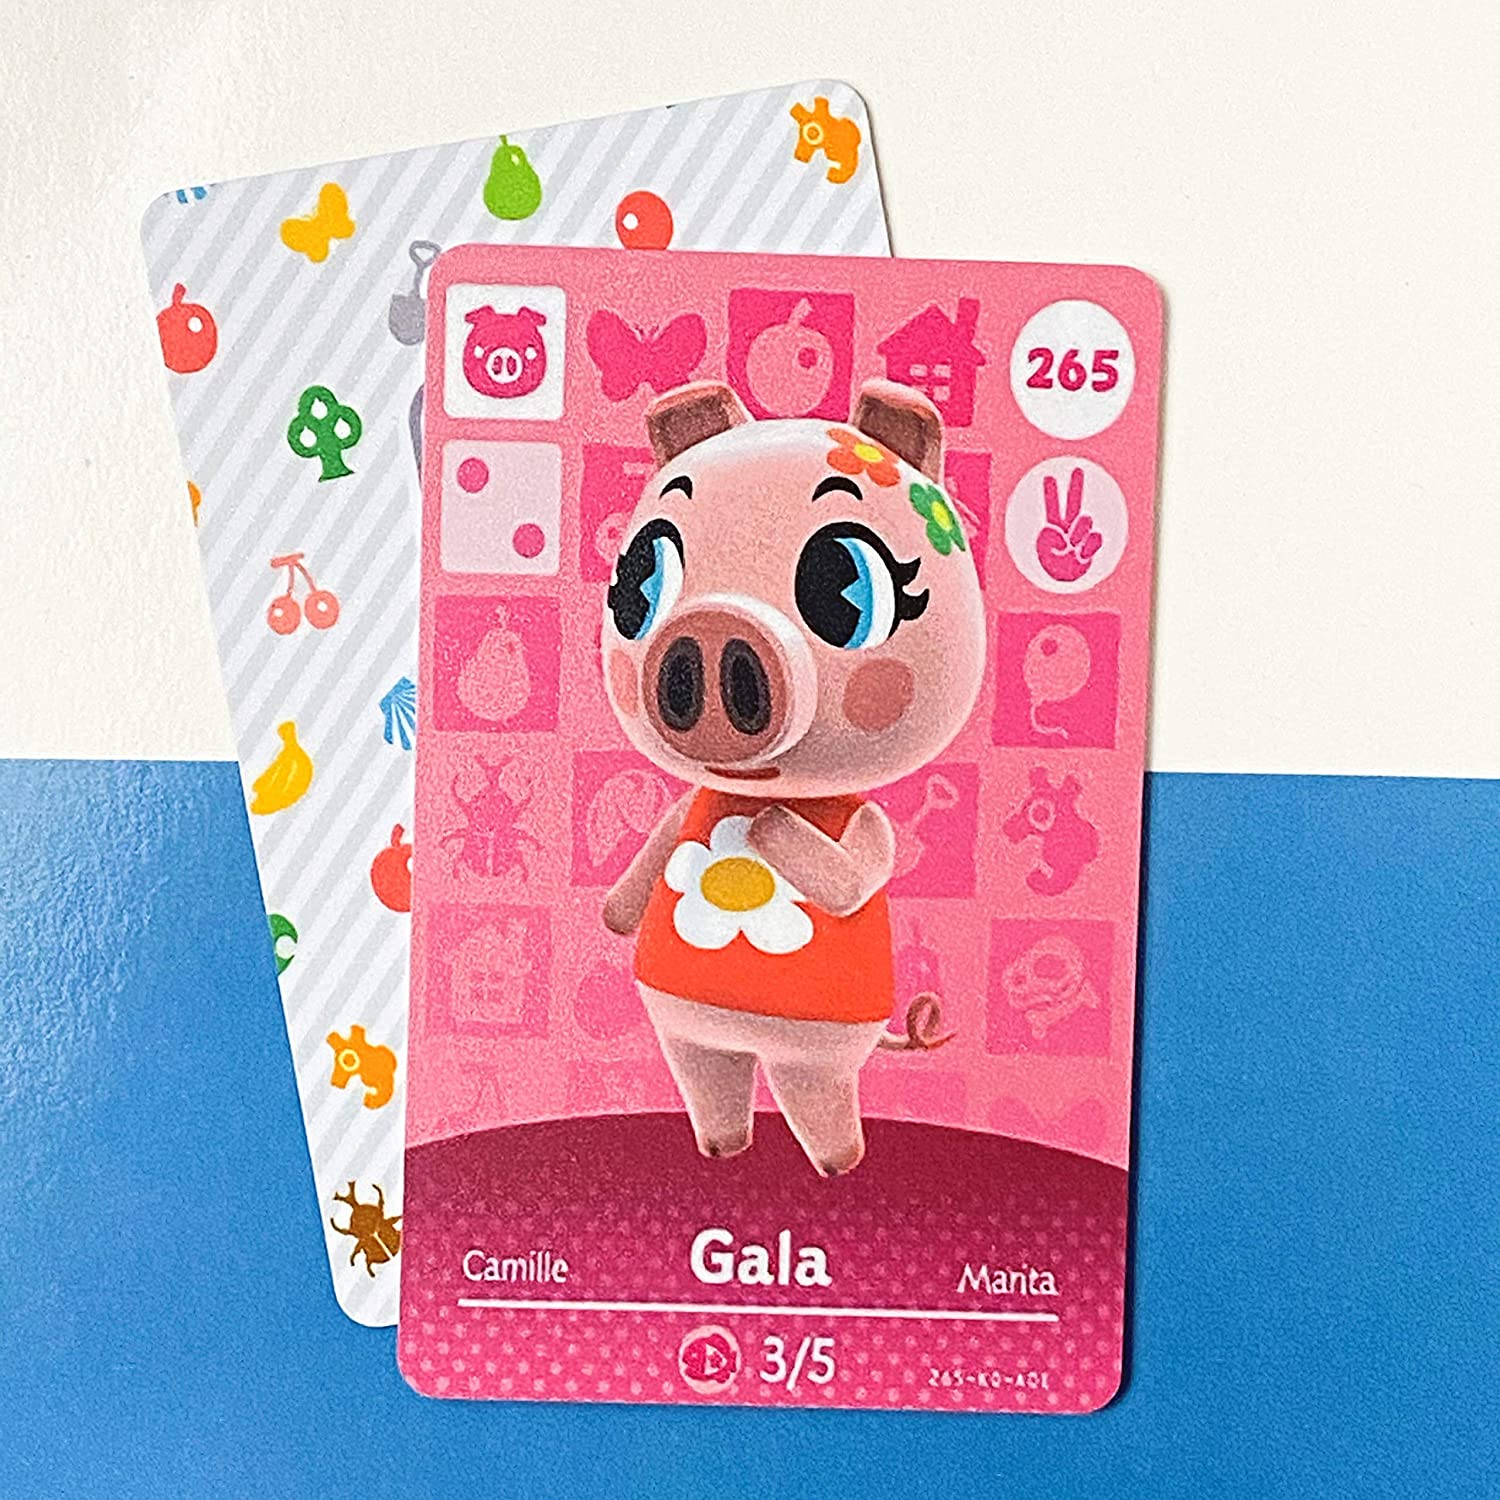 No.265 Gala Animal Crossing Villager Cards Series 3. Third Party NFC Card. Water Resistant